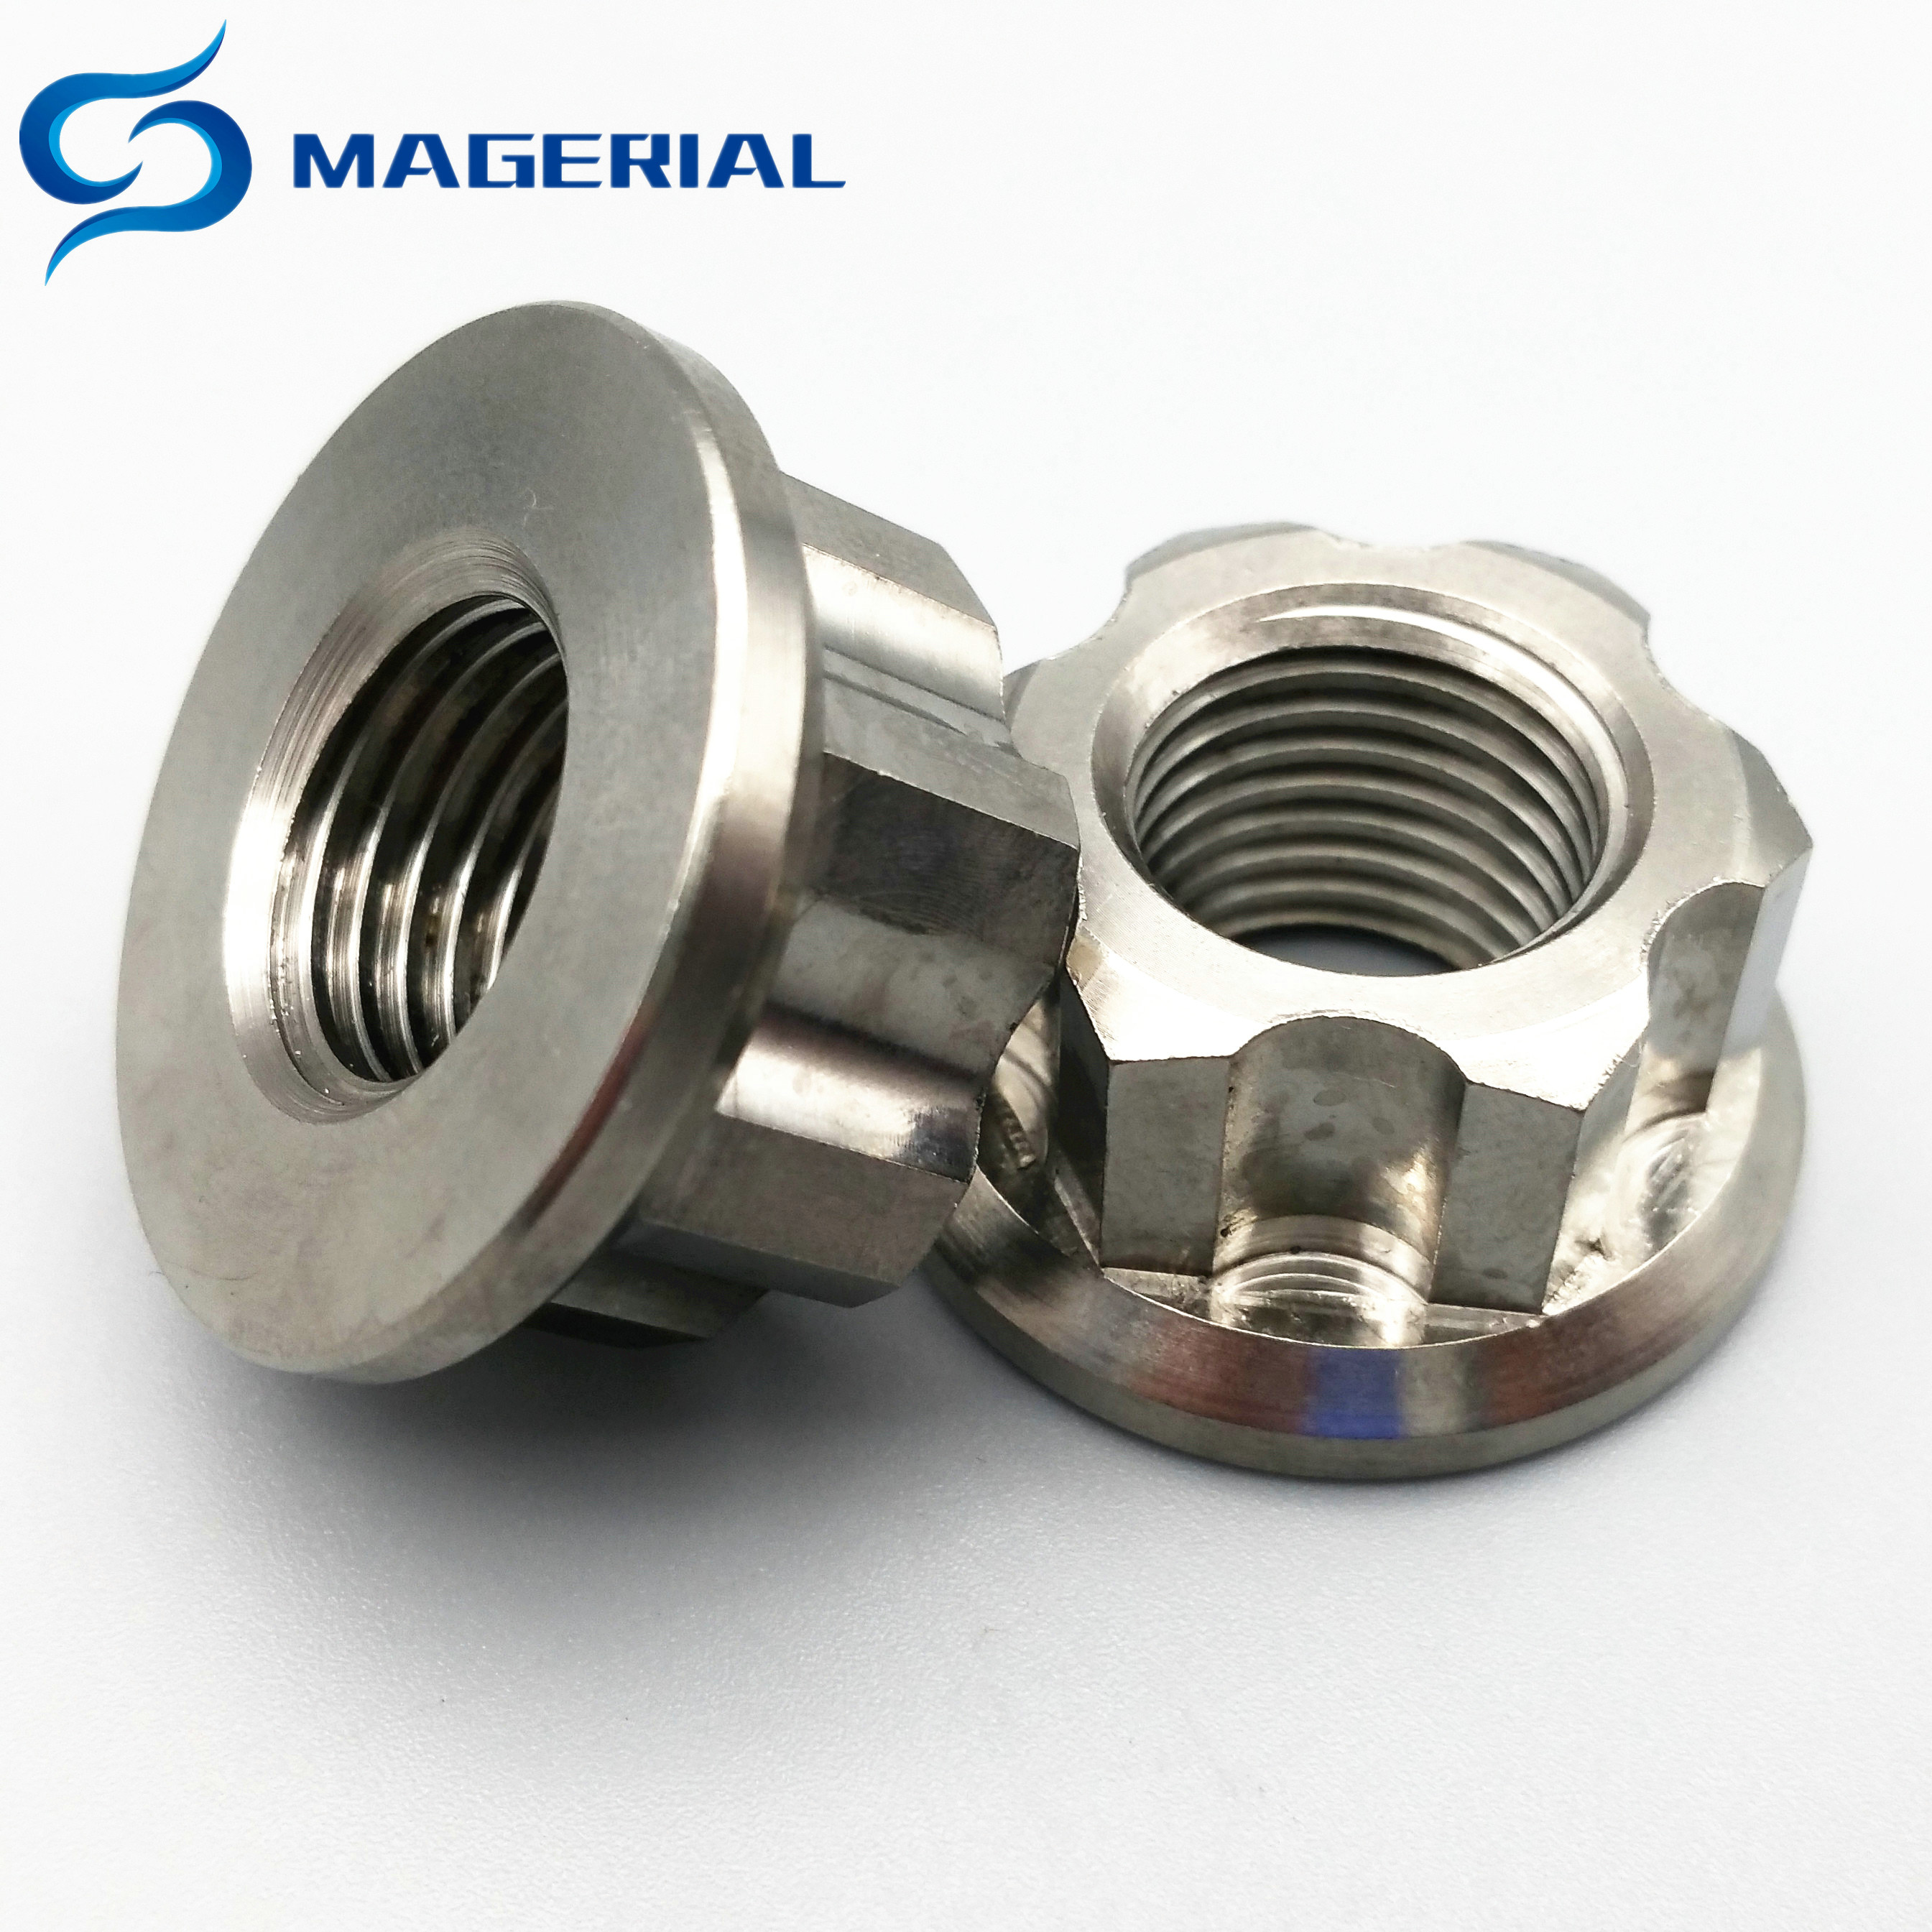 Ti Axle Nut M6 M8 <font><b>M10</b></font> M12 M14 <font><b>Titanium</b></font> Flange Nut Ti Color Hexagon <font><b>titanium</b></font> <font><b>screw</b></font> Nuts Ti fastener 2PCS image